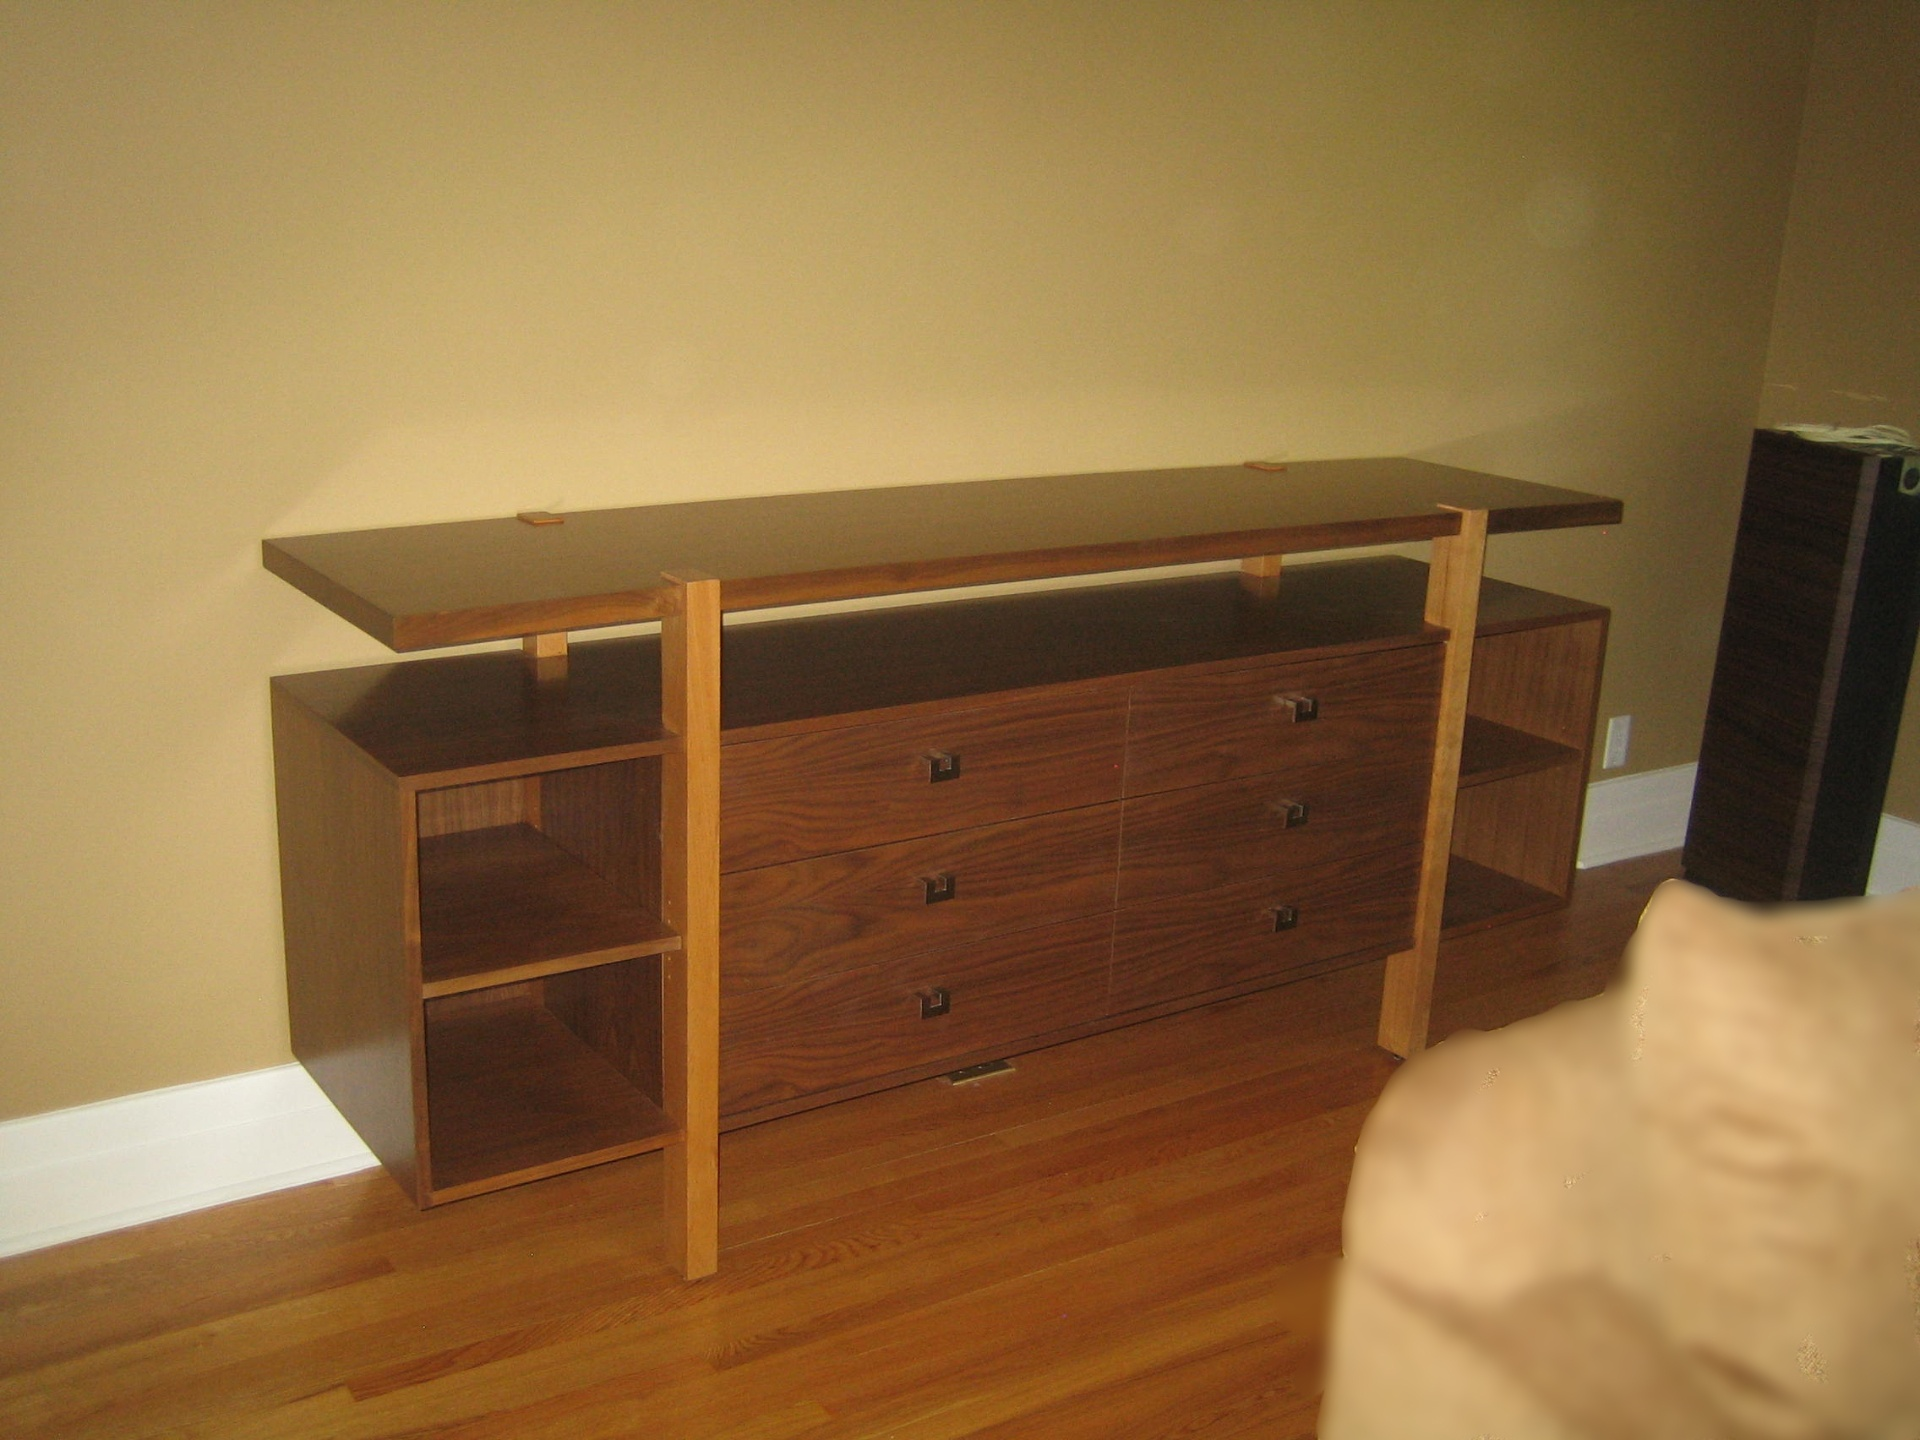 Walnut Console with Maple Posts